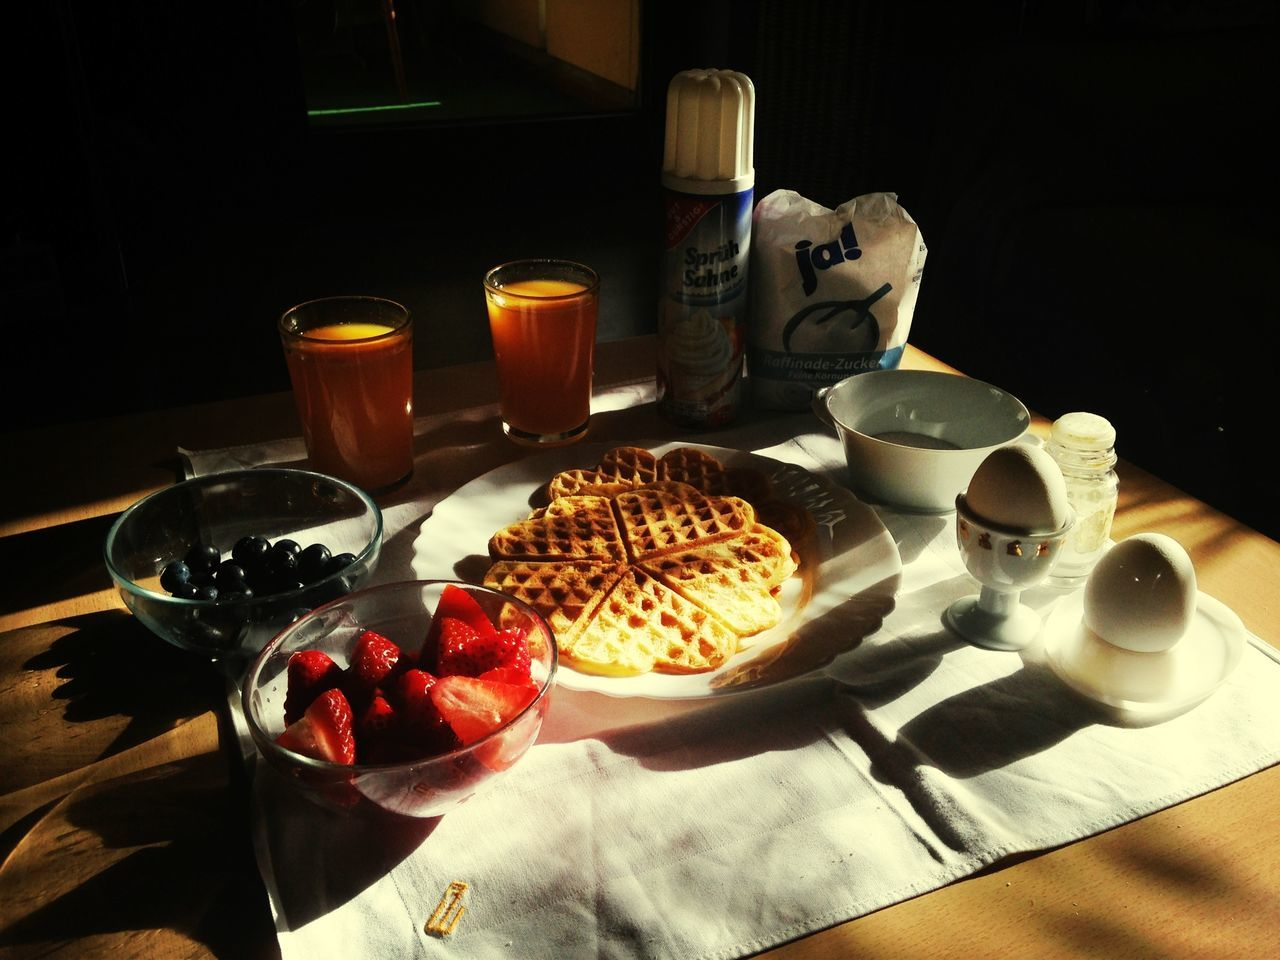 food and drink, refreshment, drink, coffee cup, food, freshness, table, plate, no people, bowl, fruit, indoors, drinking glass, ready-to-eat, healthy eating, close-up, day